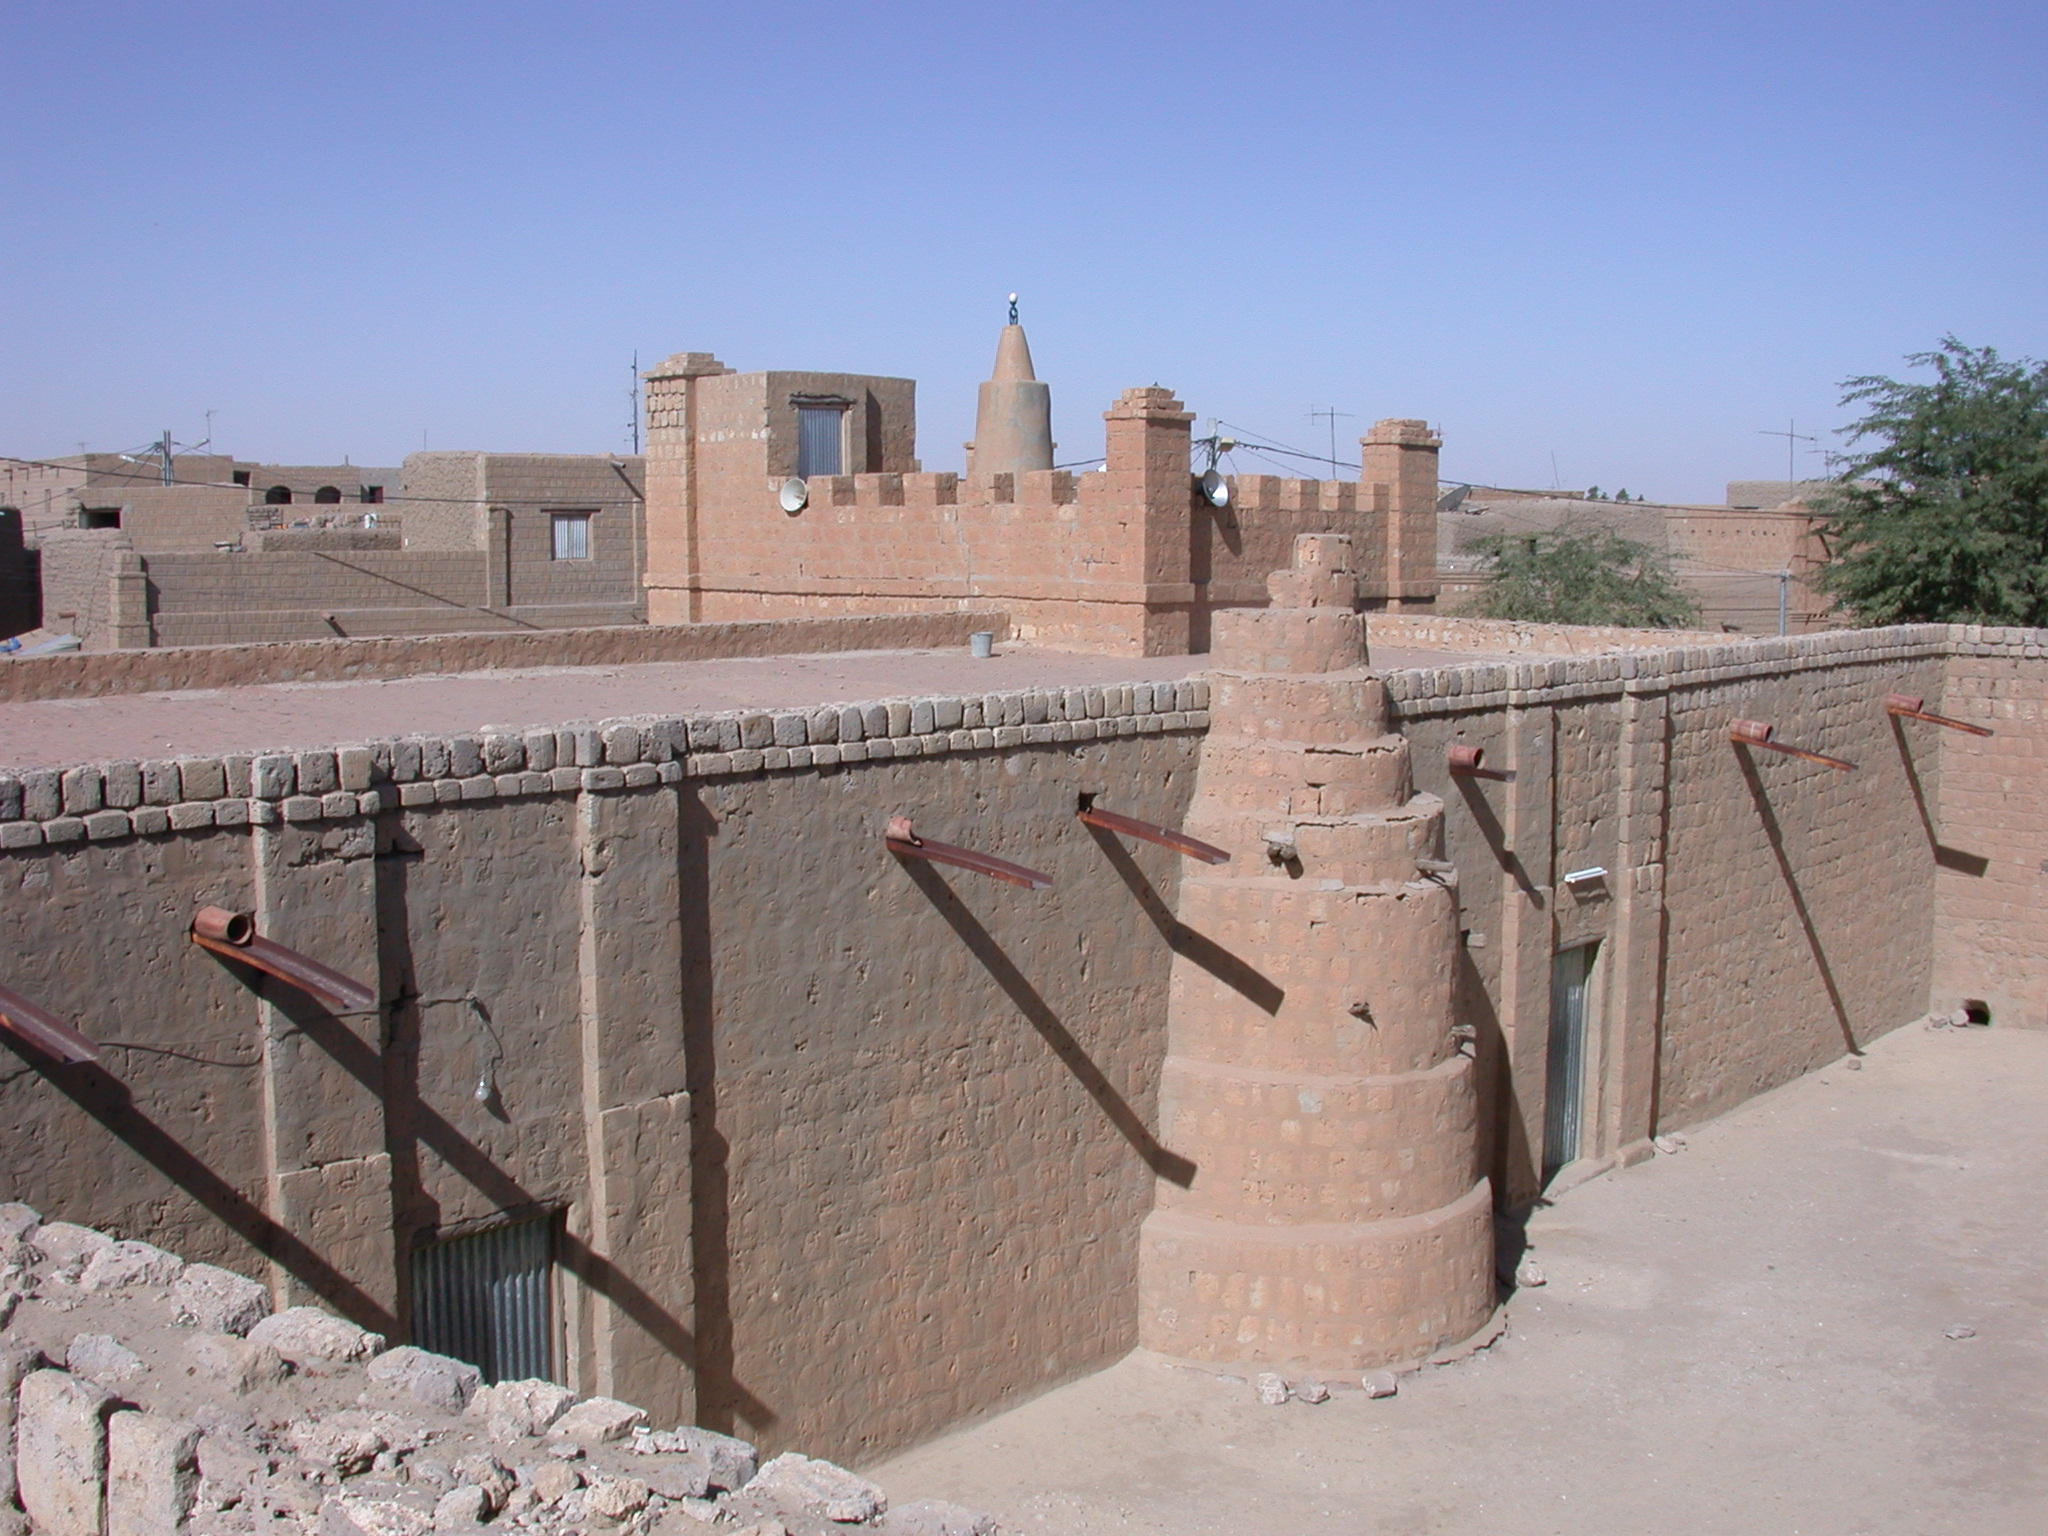 View of Ostrich-Egg on Minaret of Mosque, Timbuktu, Mali